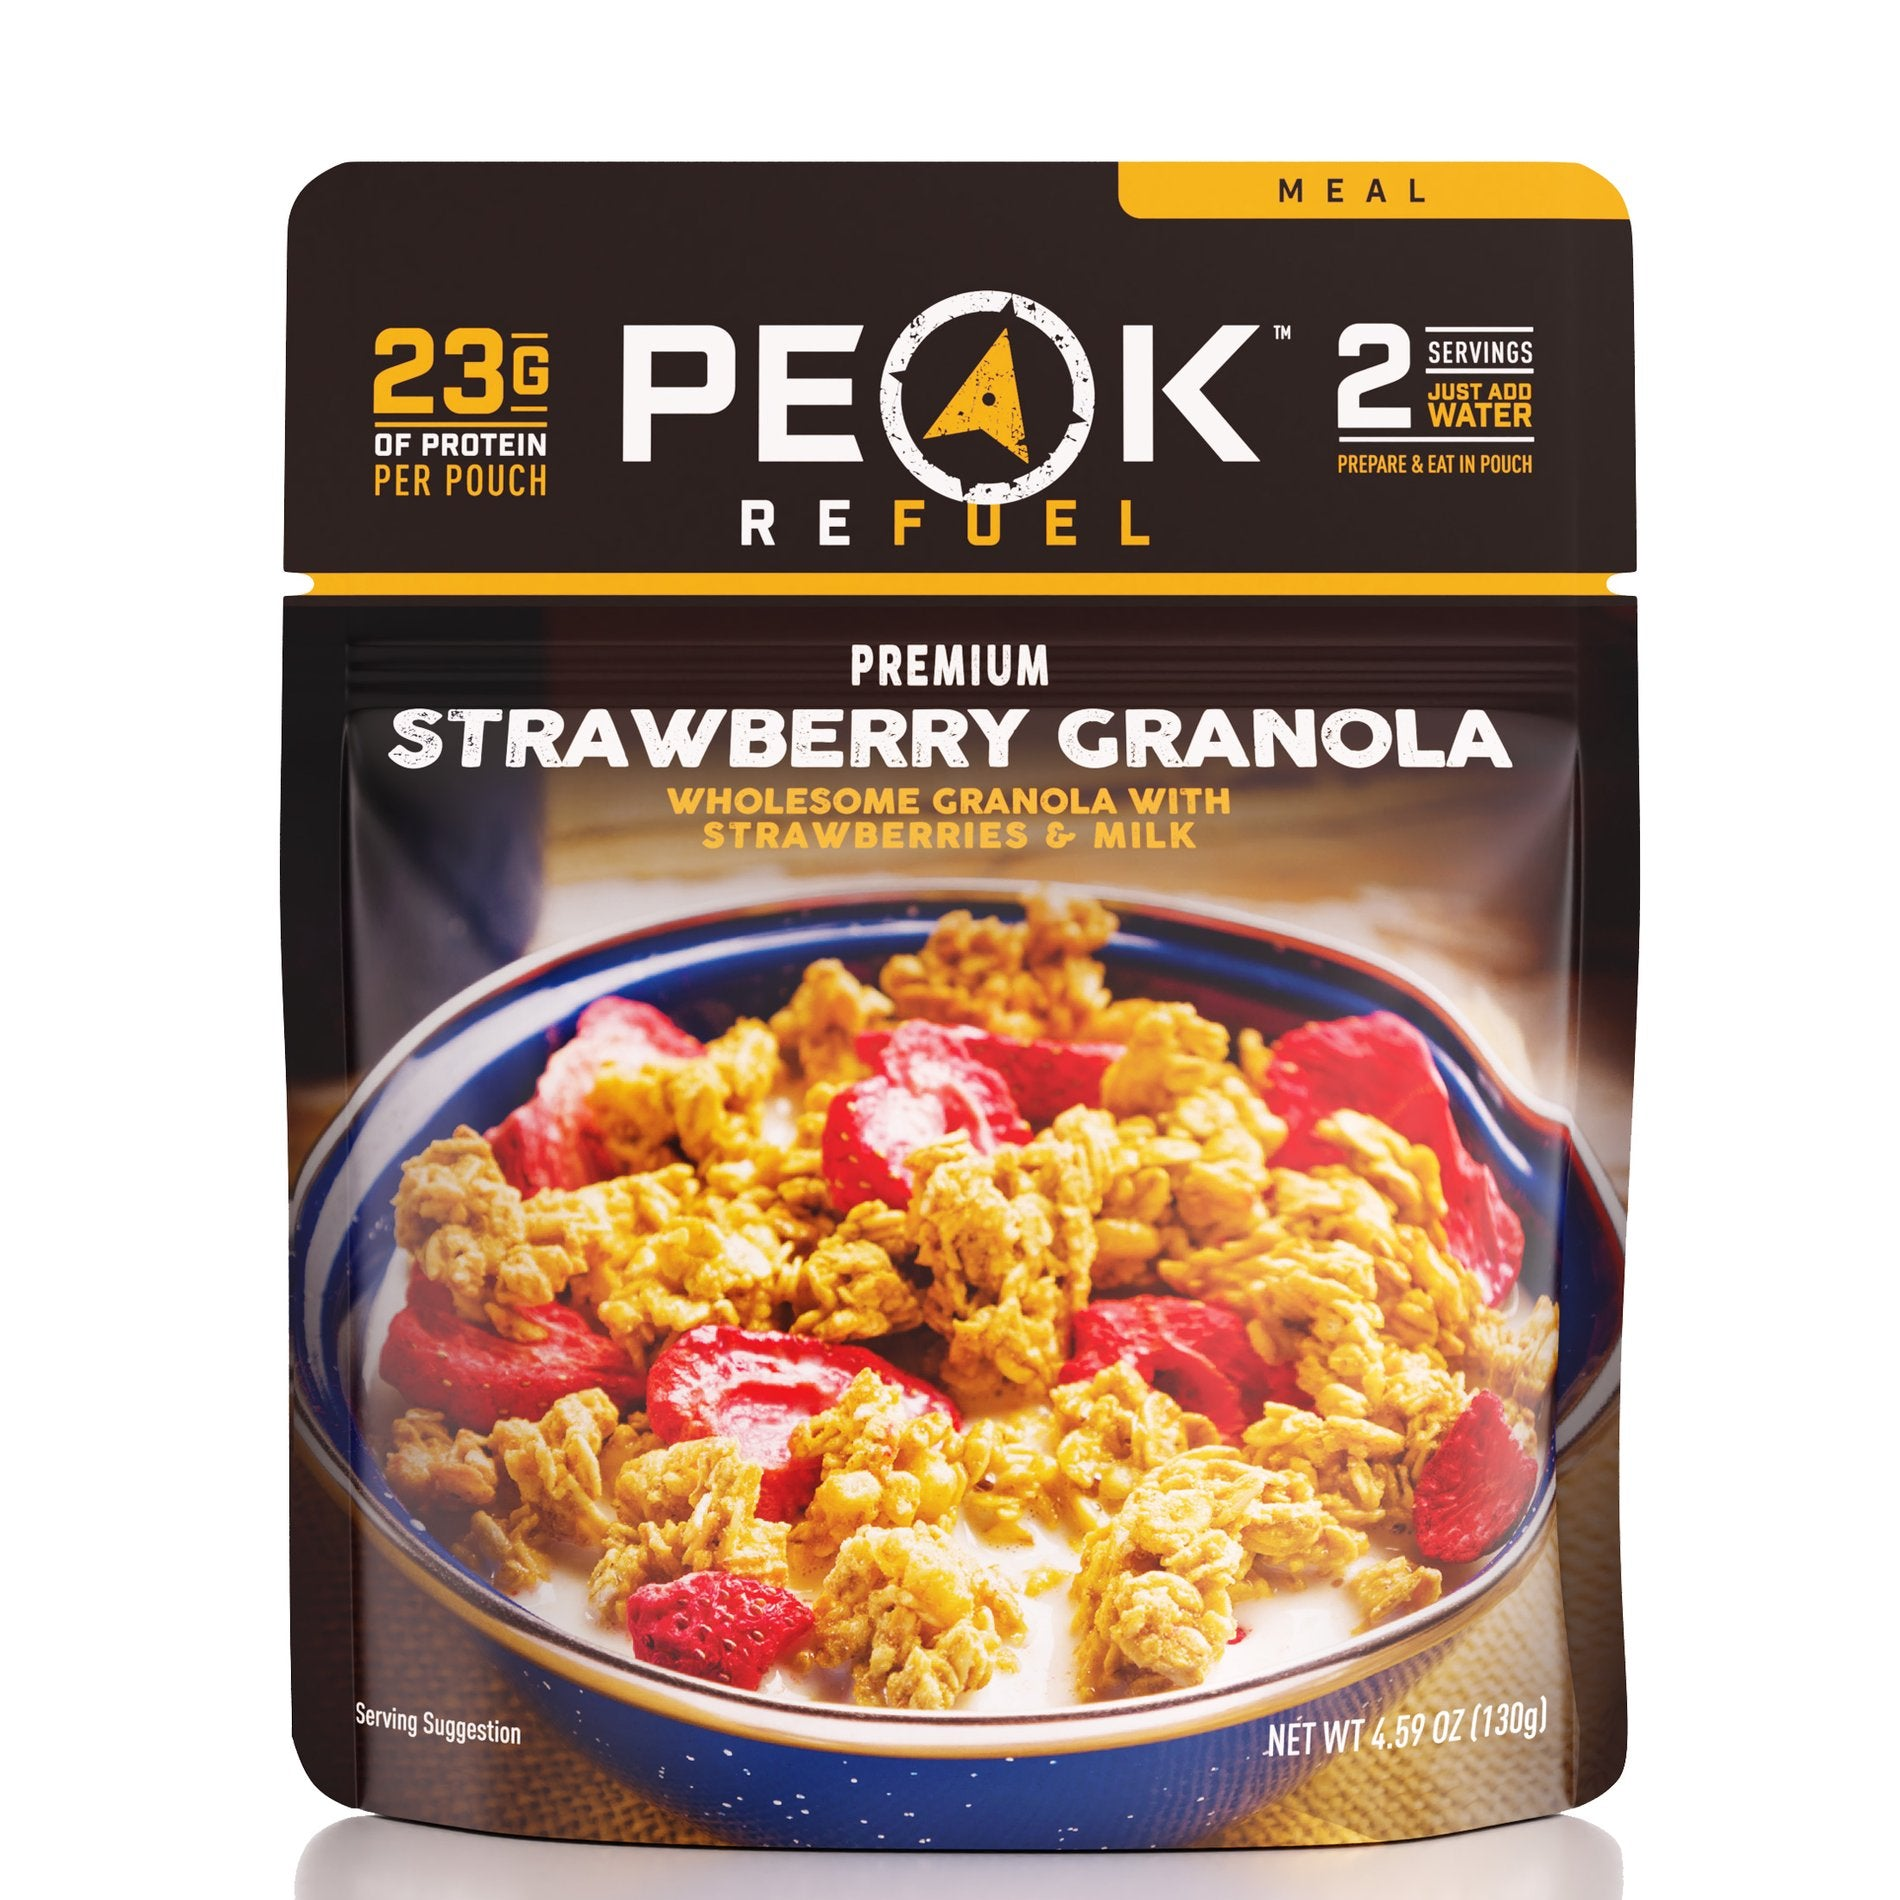 STRAWBERRY GRANOLA by Peak Refuel